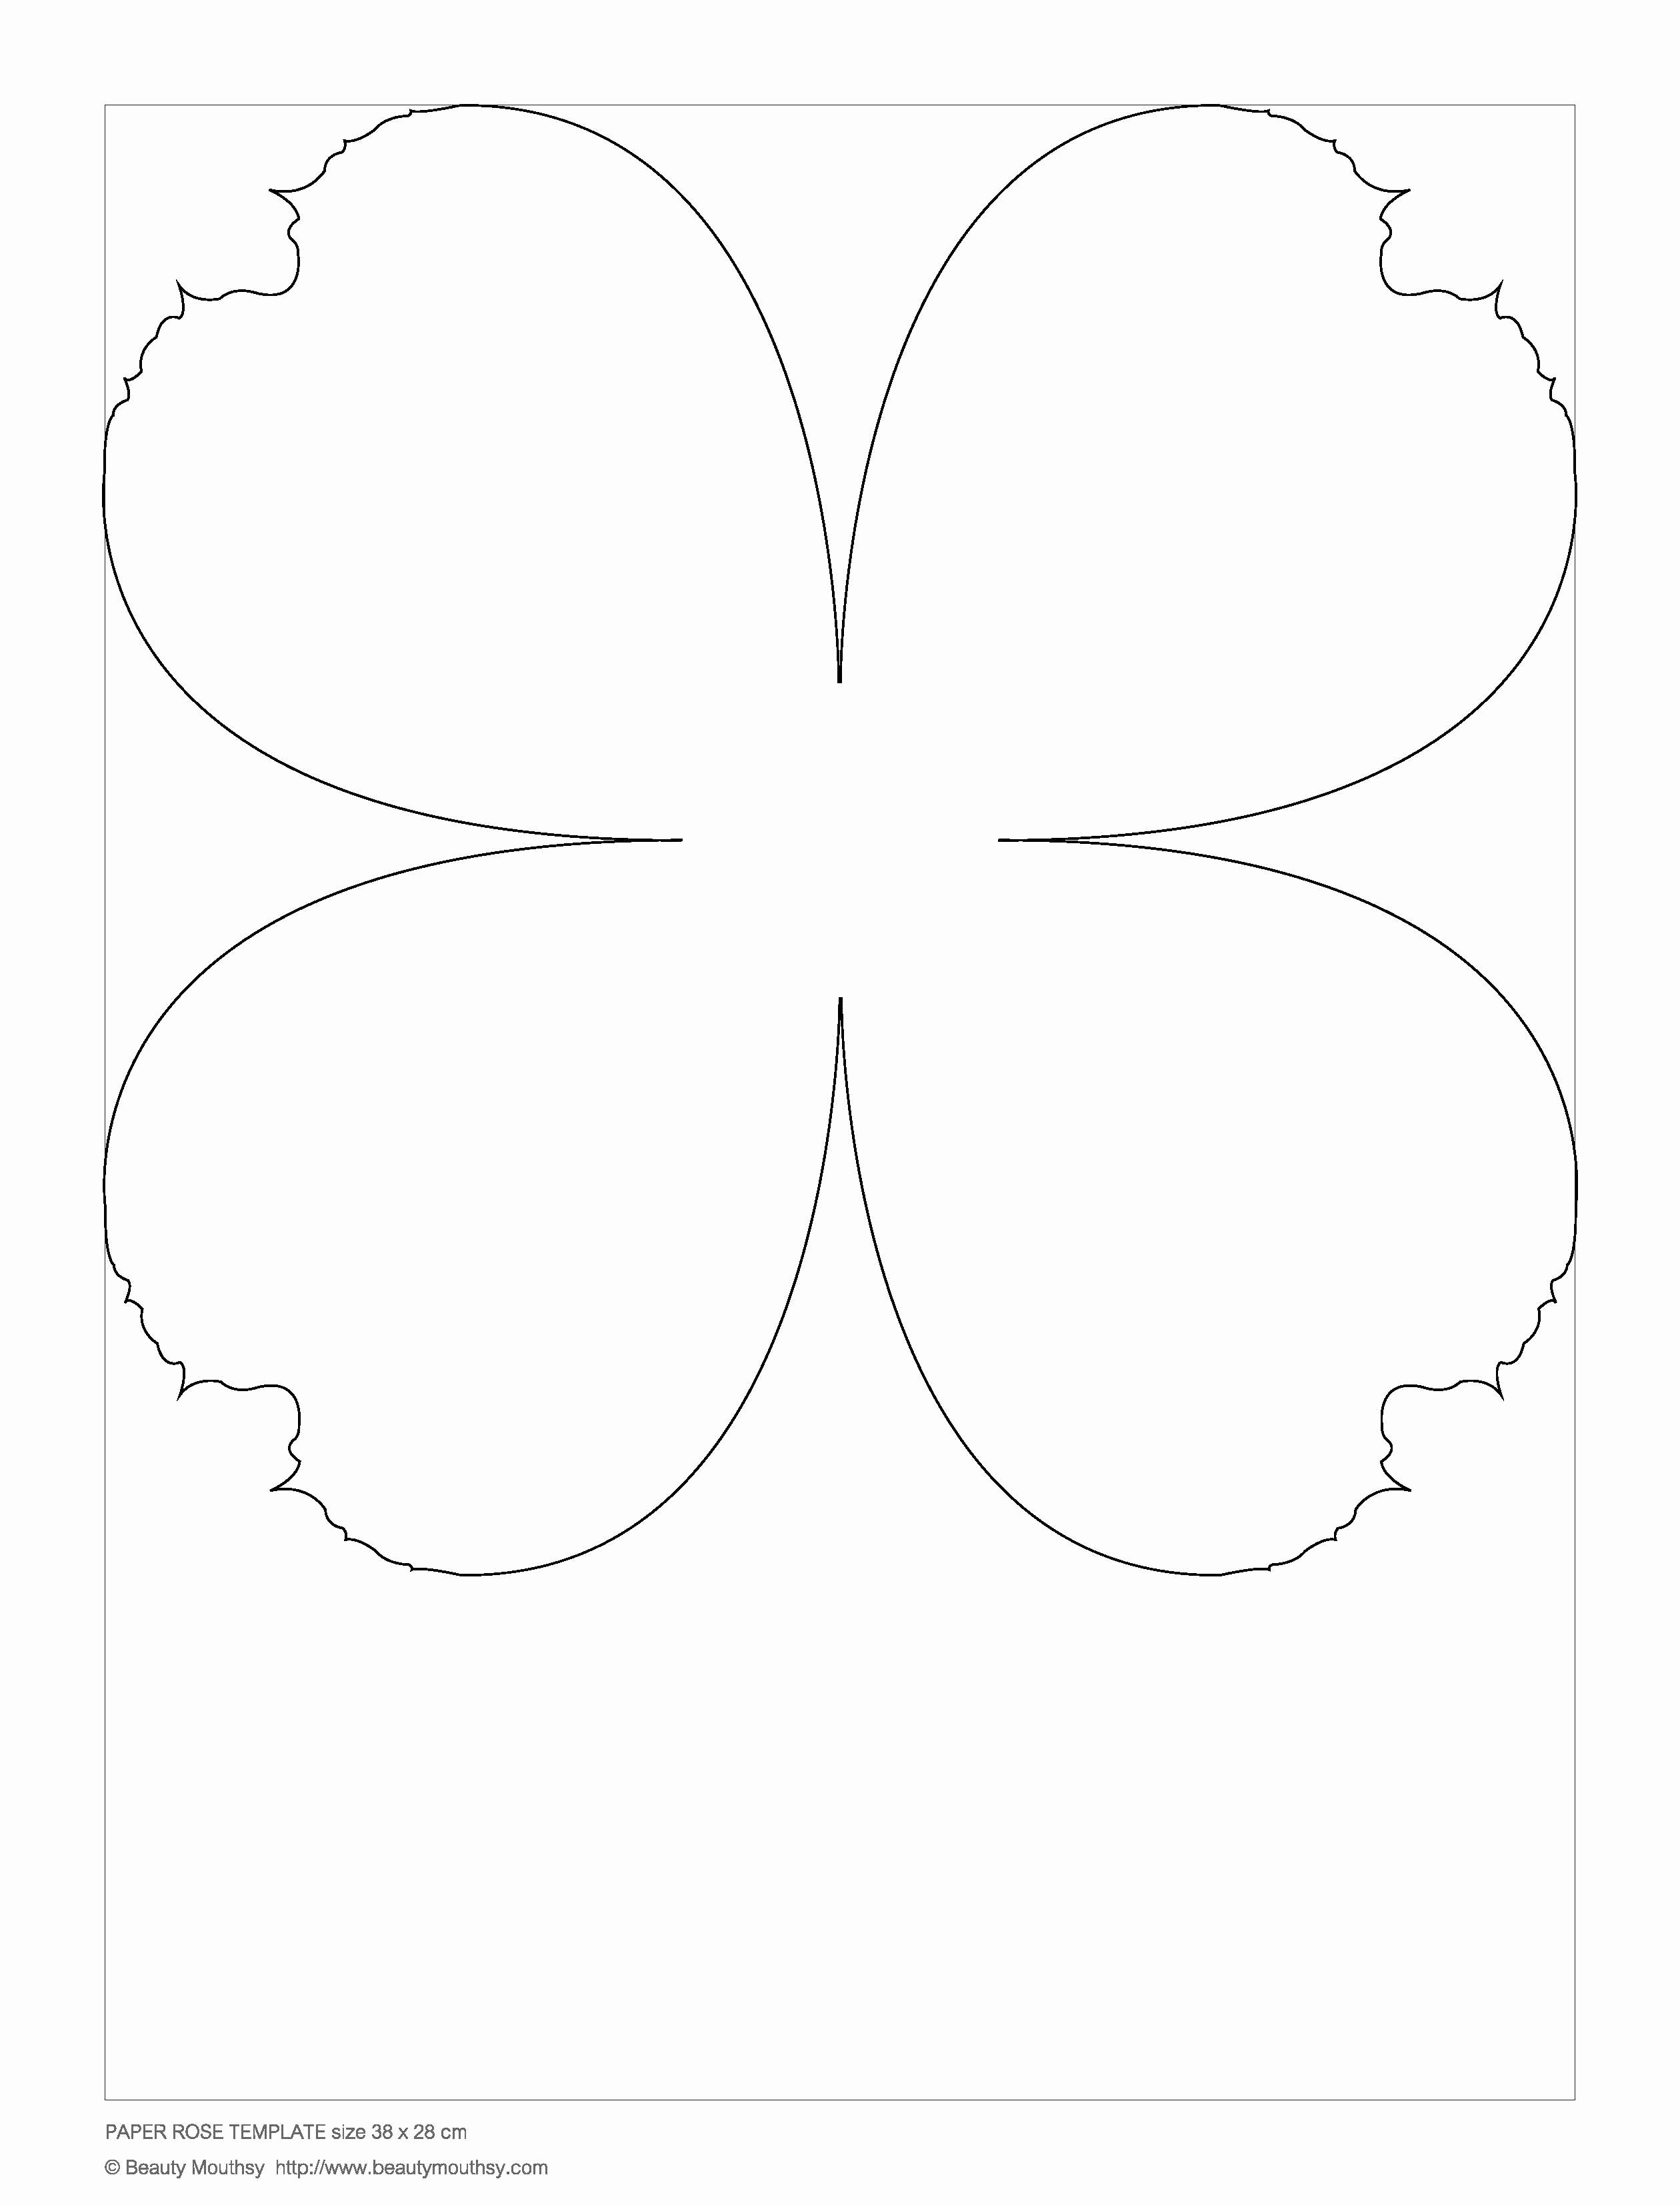 Free Rose Paper Flower Template Fresh Paper Rose Template Small